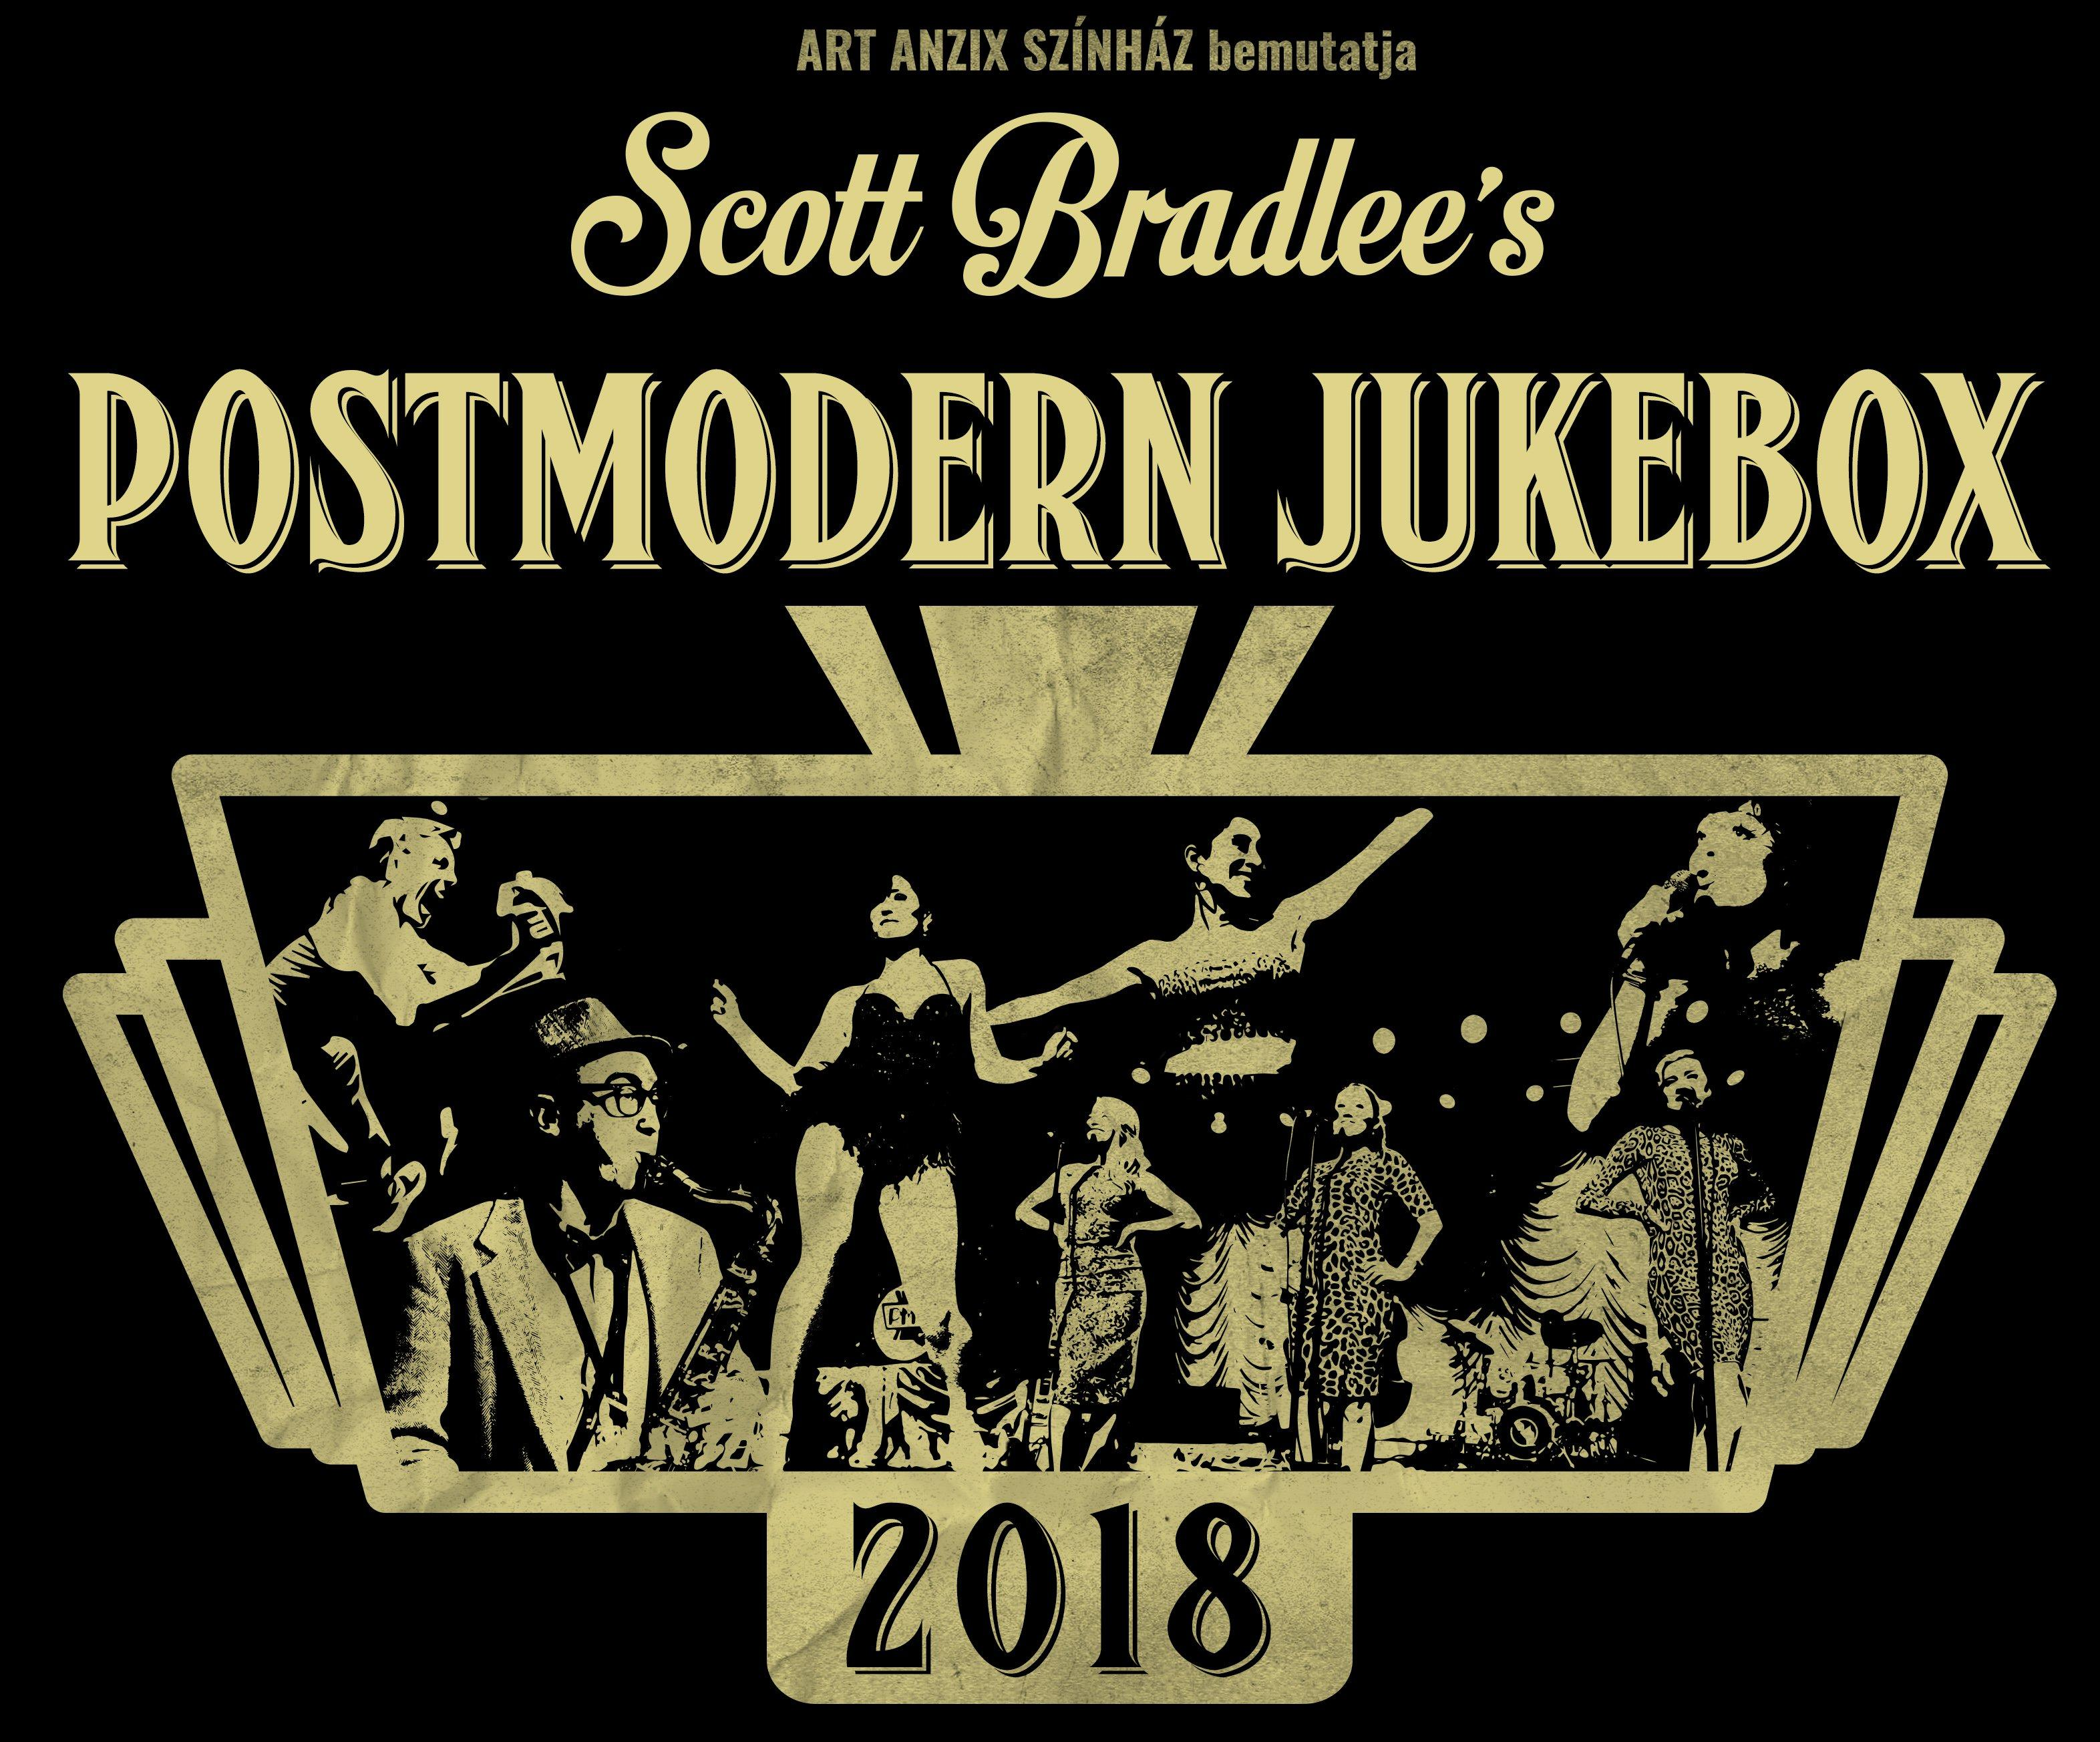 Scott Bradlee's 'Postmodern Jukebox', Budapest Arena, 17 May